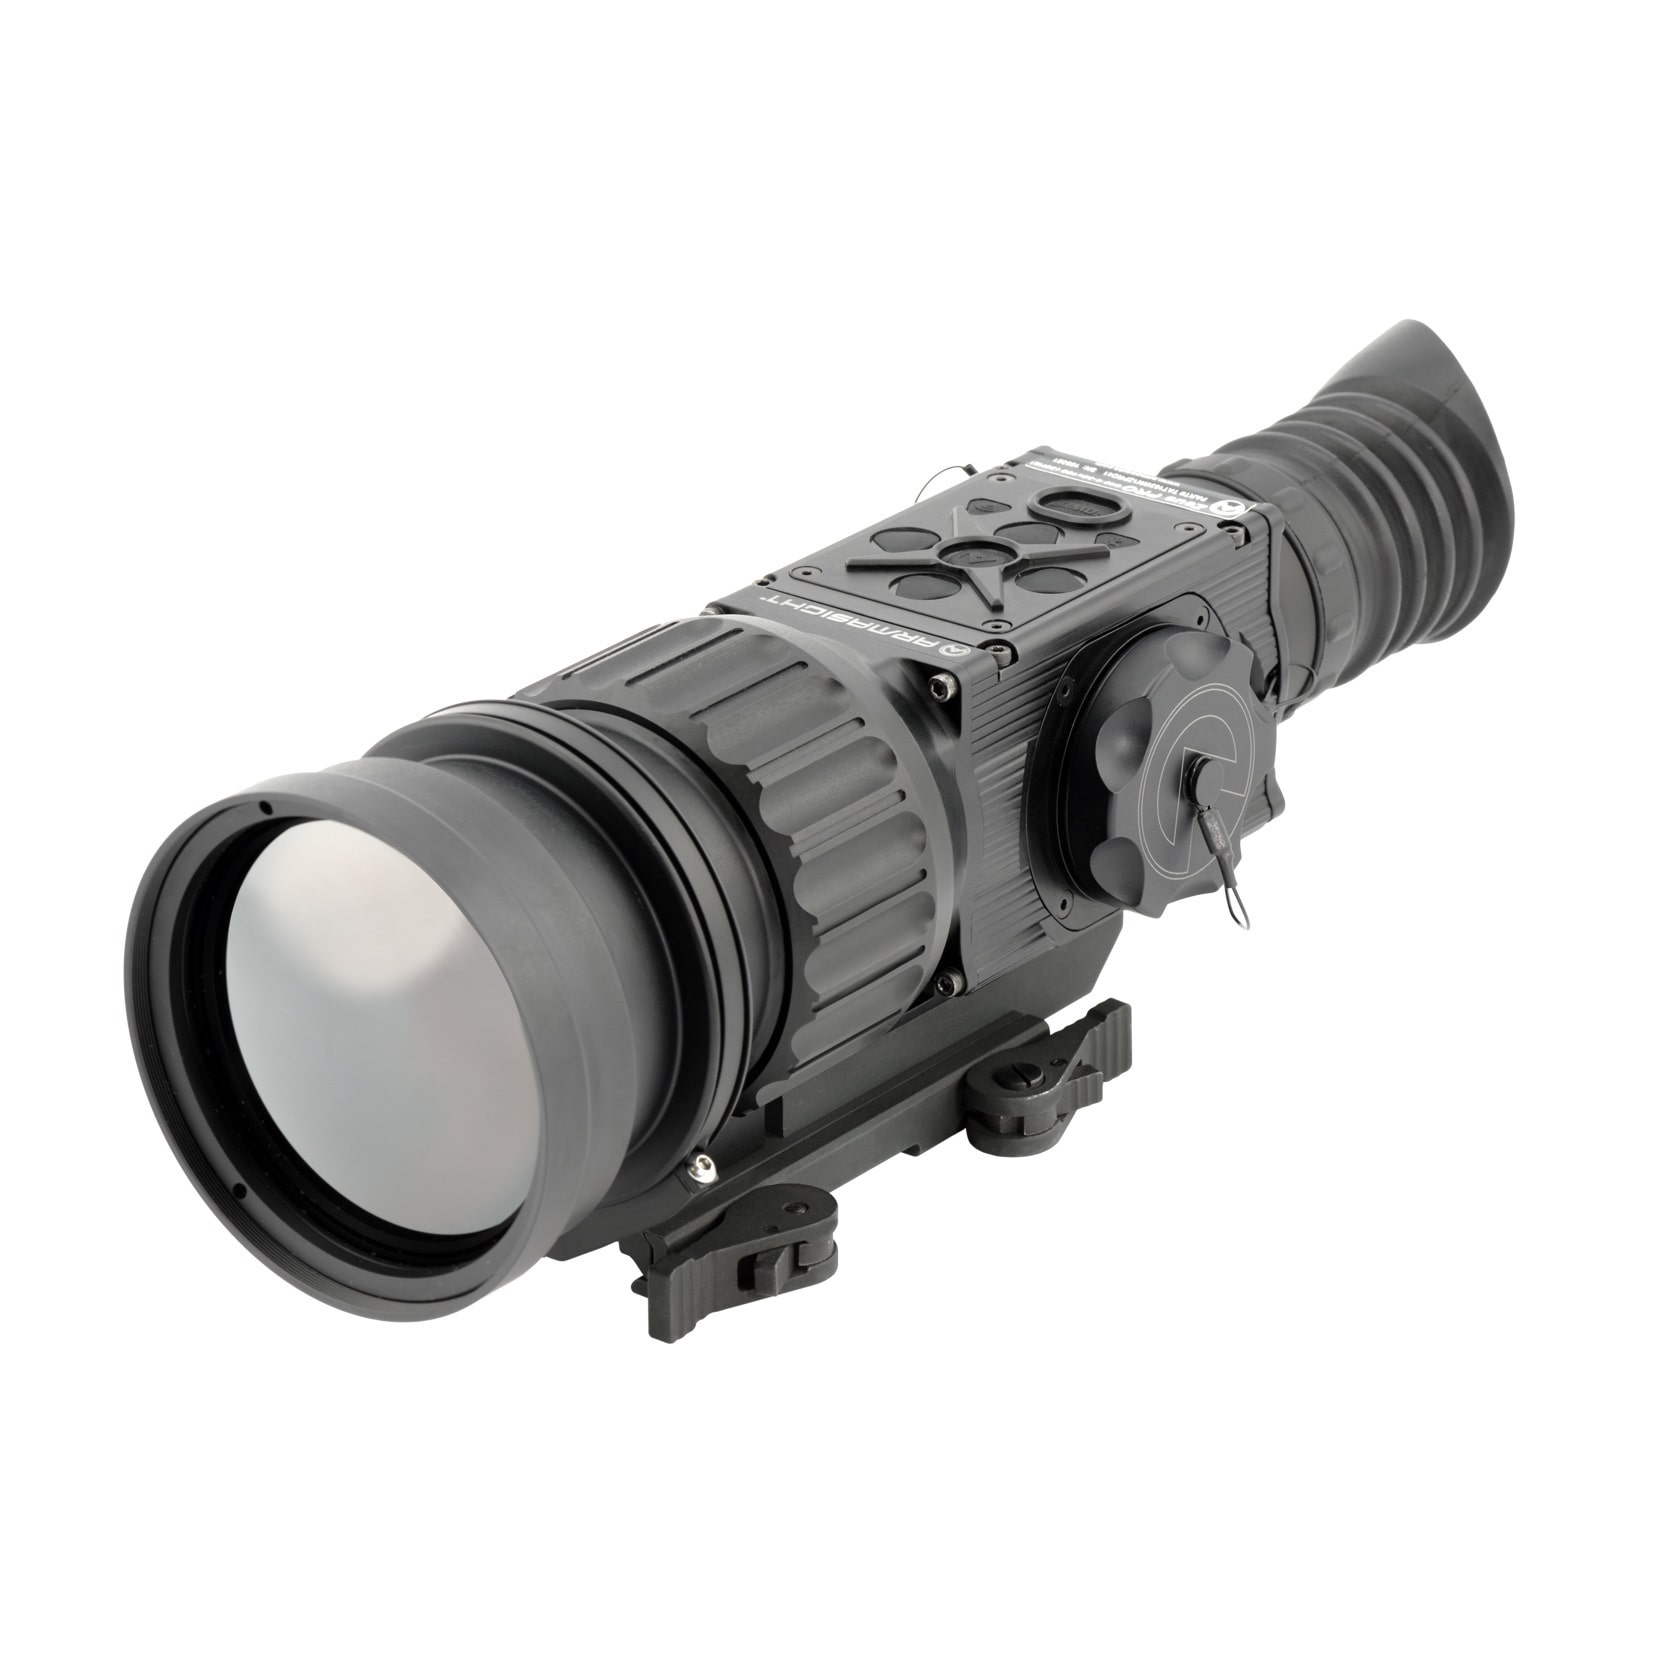 Armasight Zeus-Pro 640 4-32x100 (60 Hz) Thermal IMaging Weapon Sight FLIR Tau 2 Core 100mm Lens by Overstock